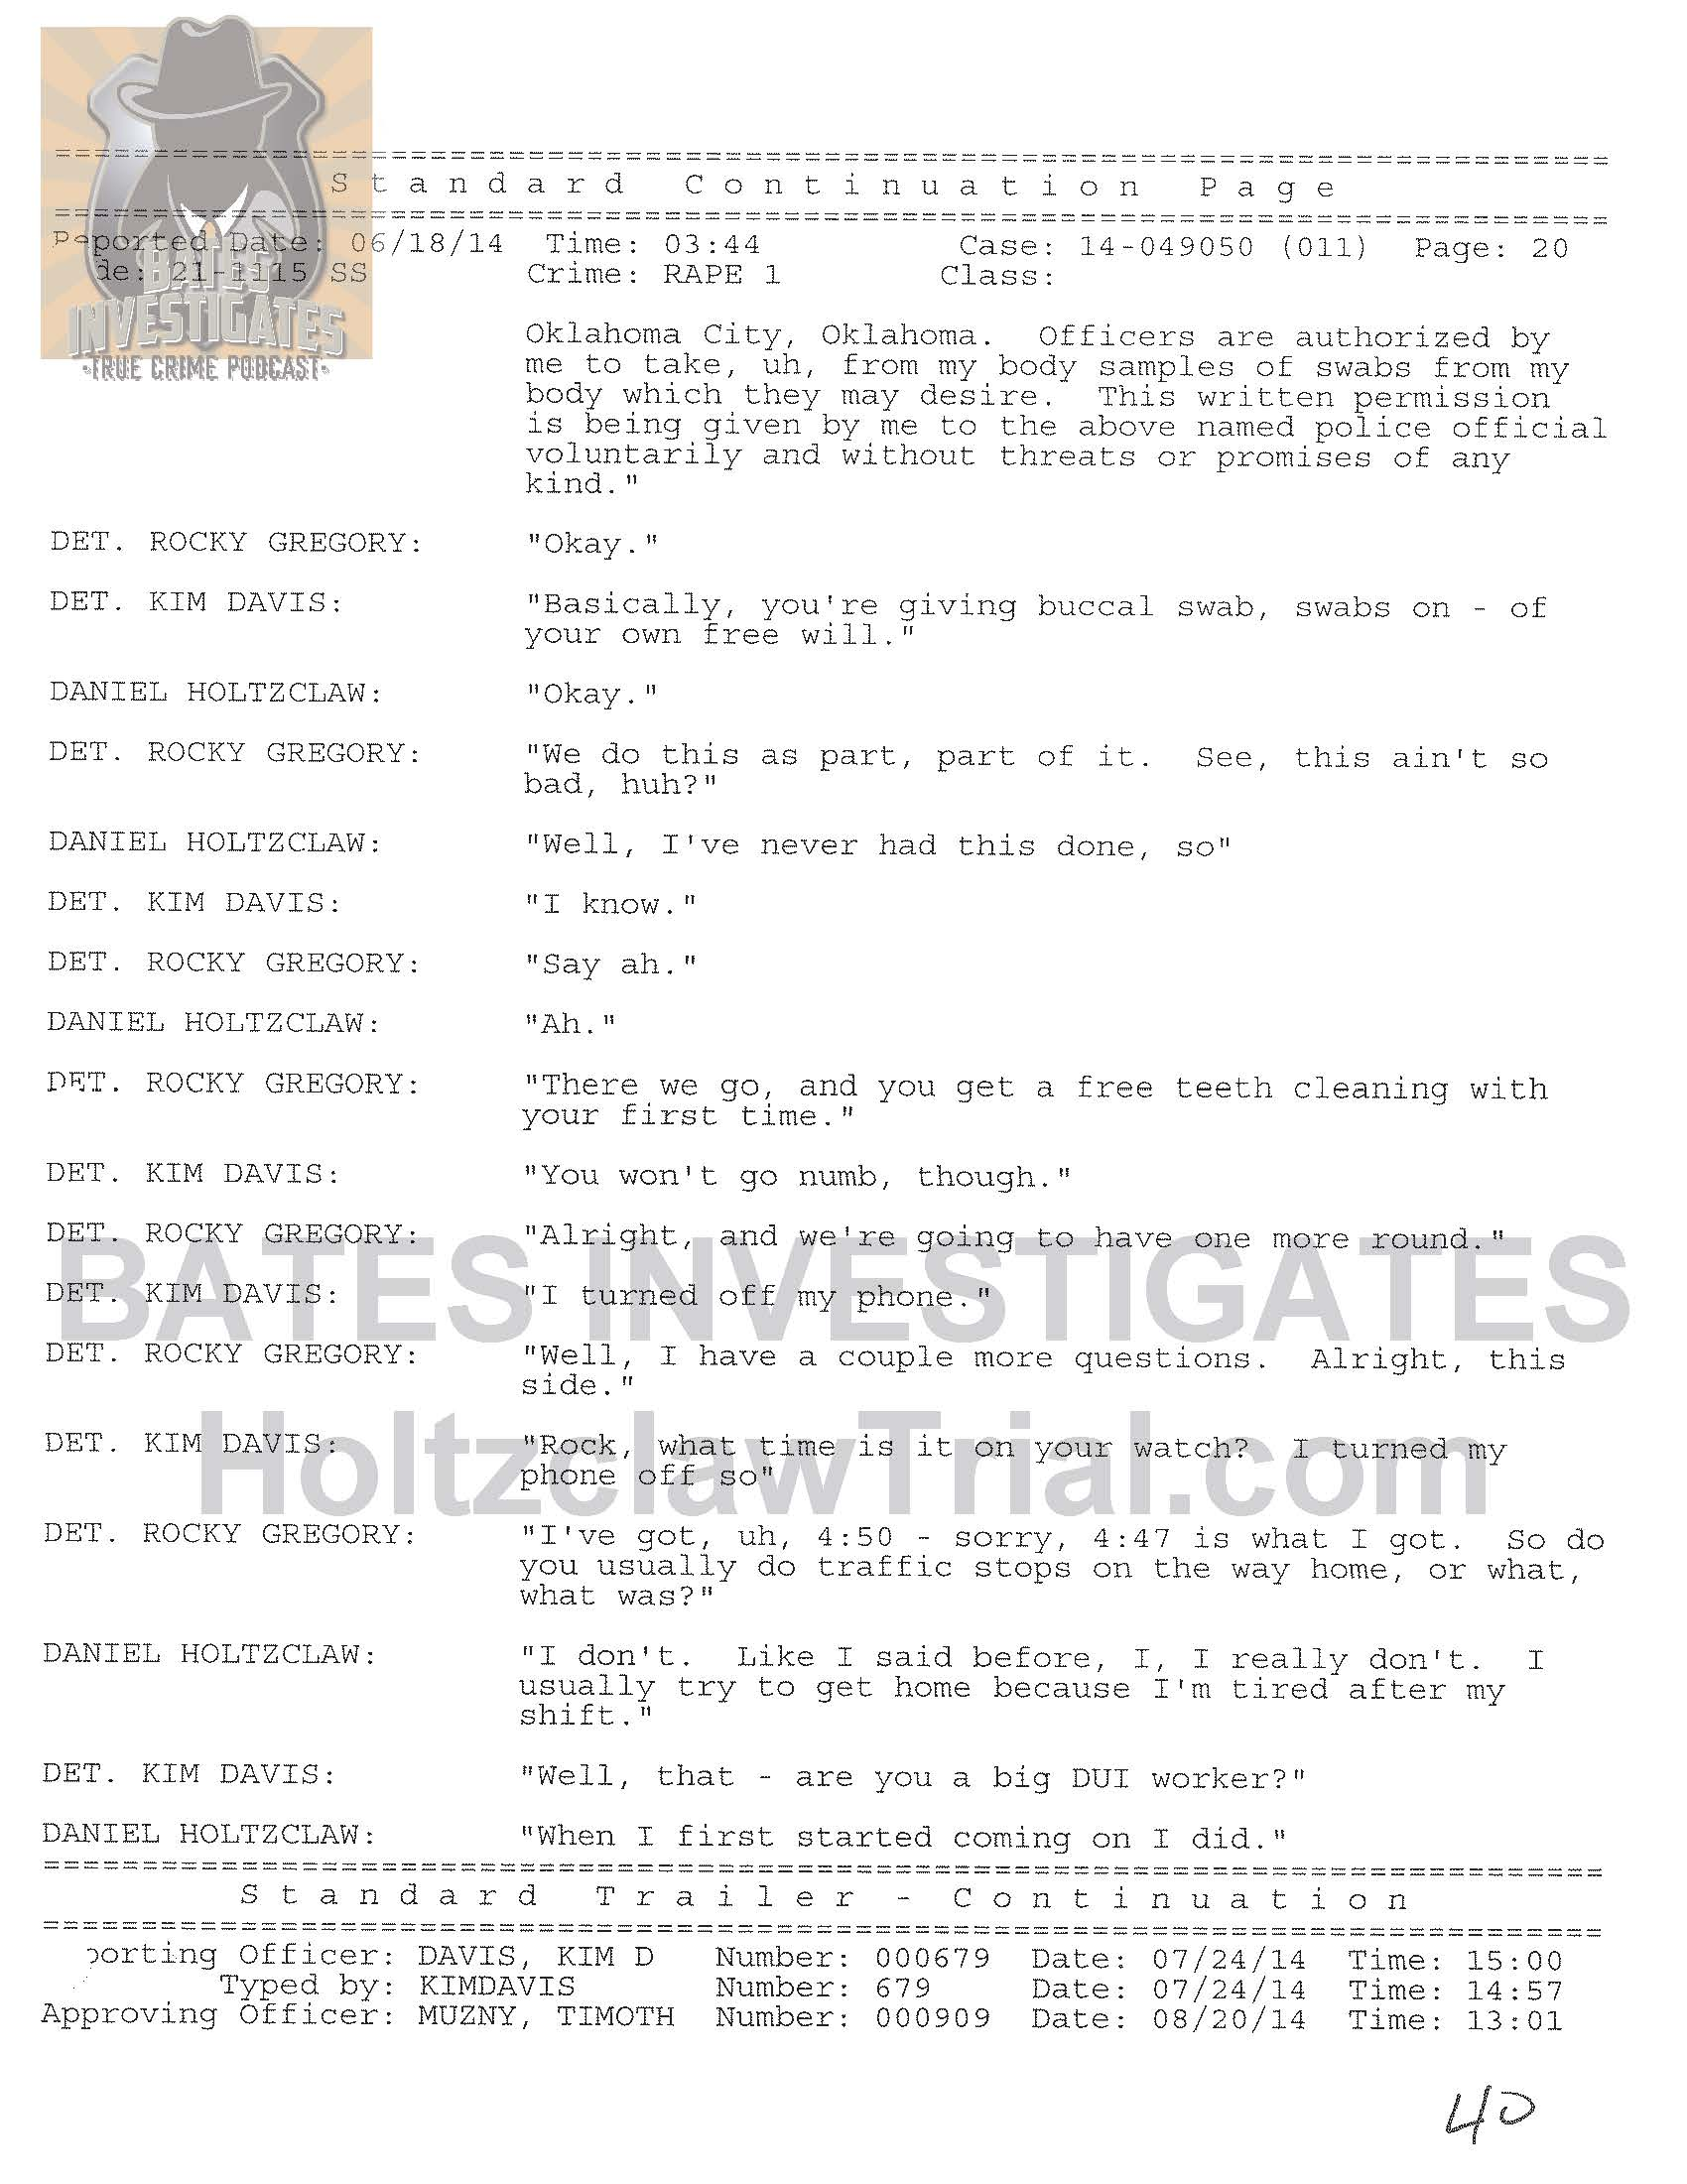 Holtzclaw Interrogation Transcript - Ep02 Redacted_Page_20.jpg